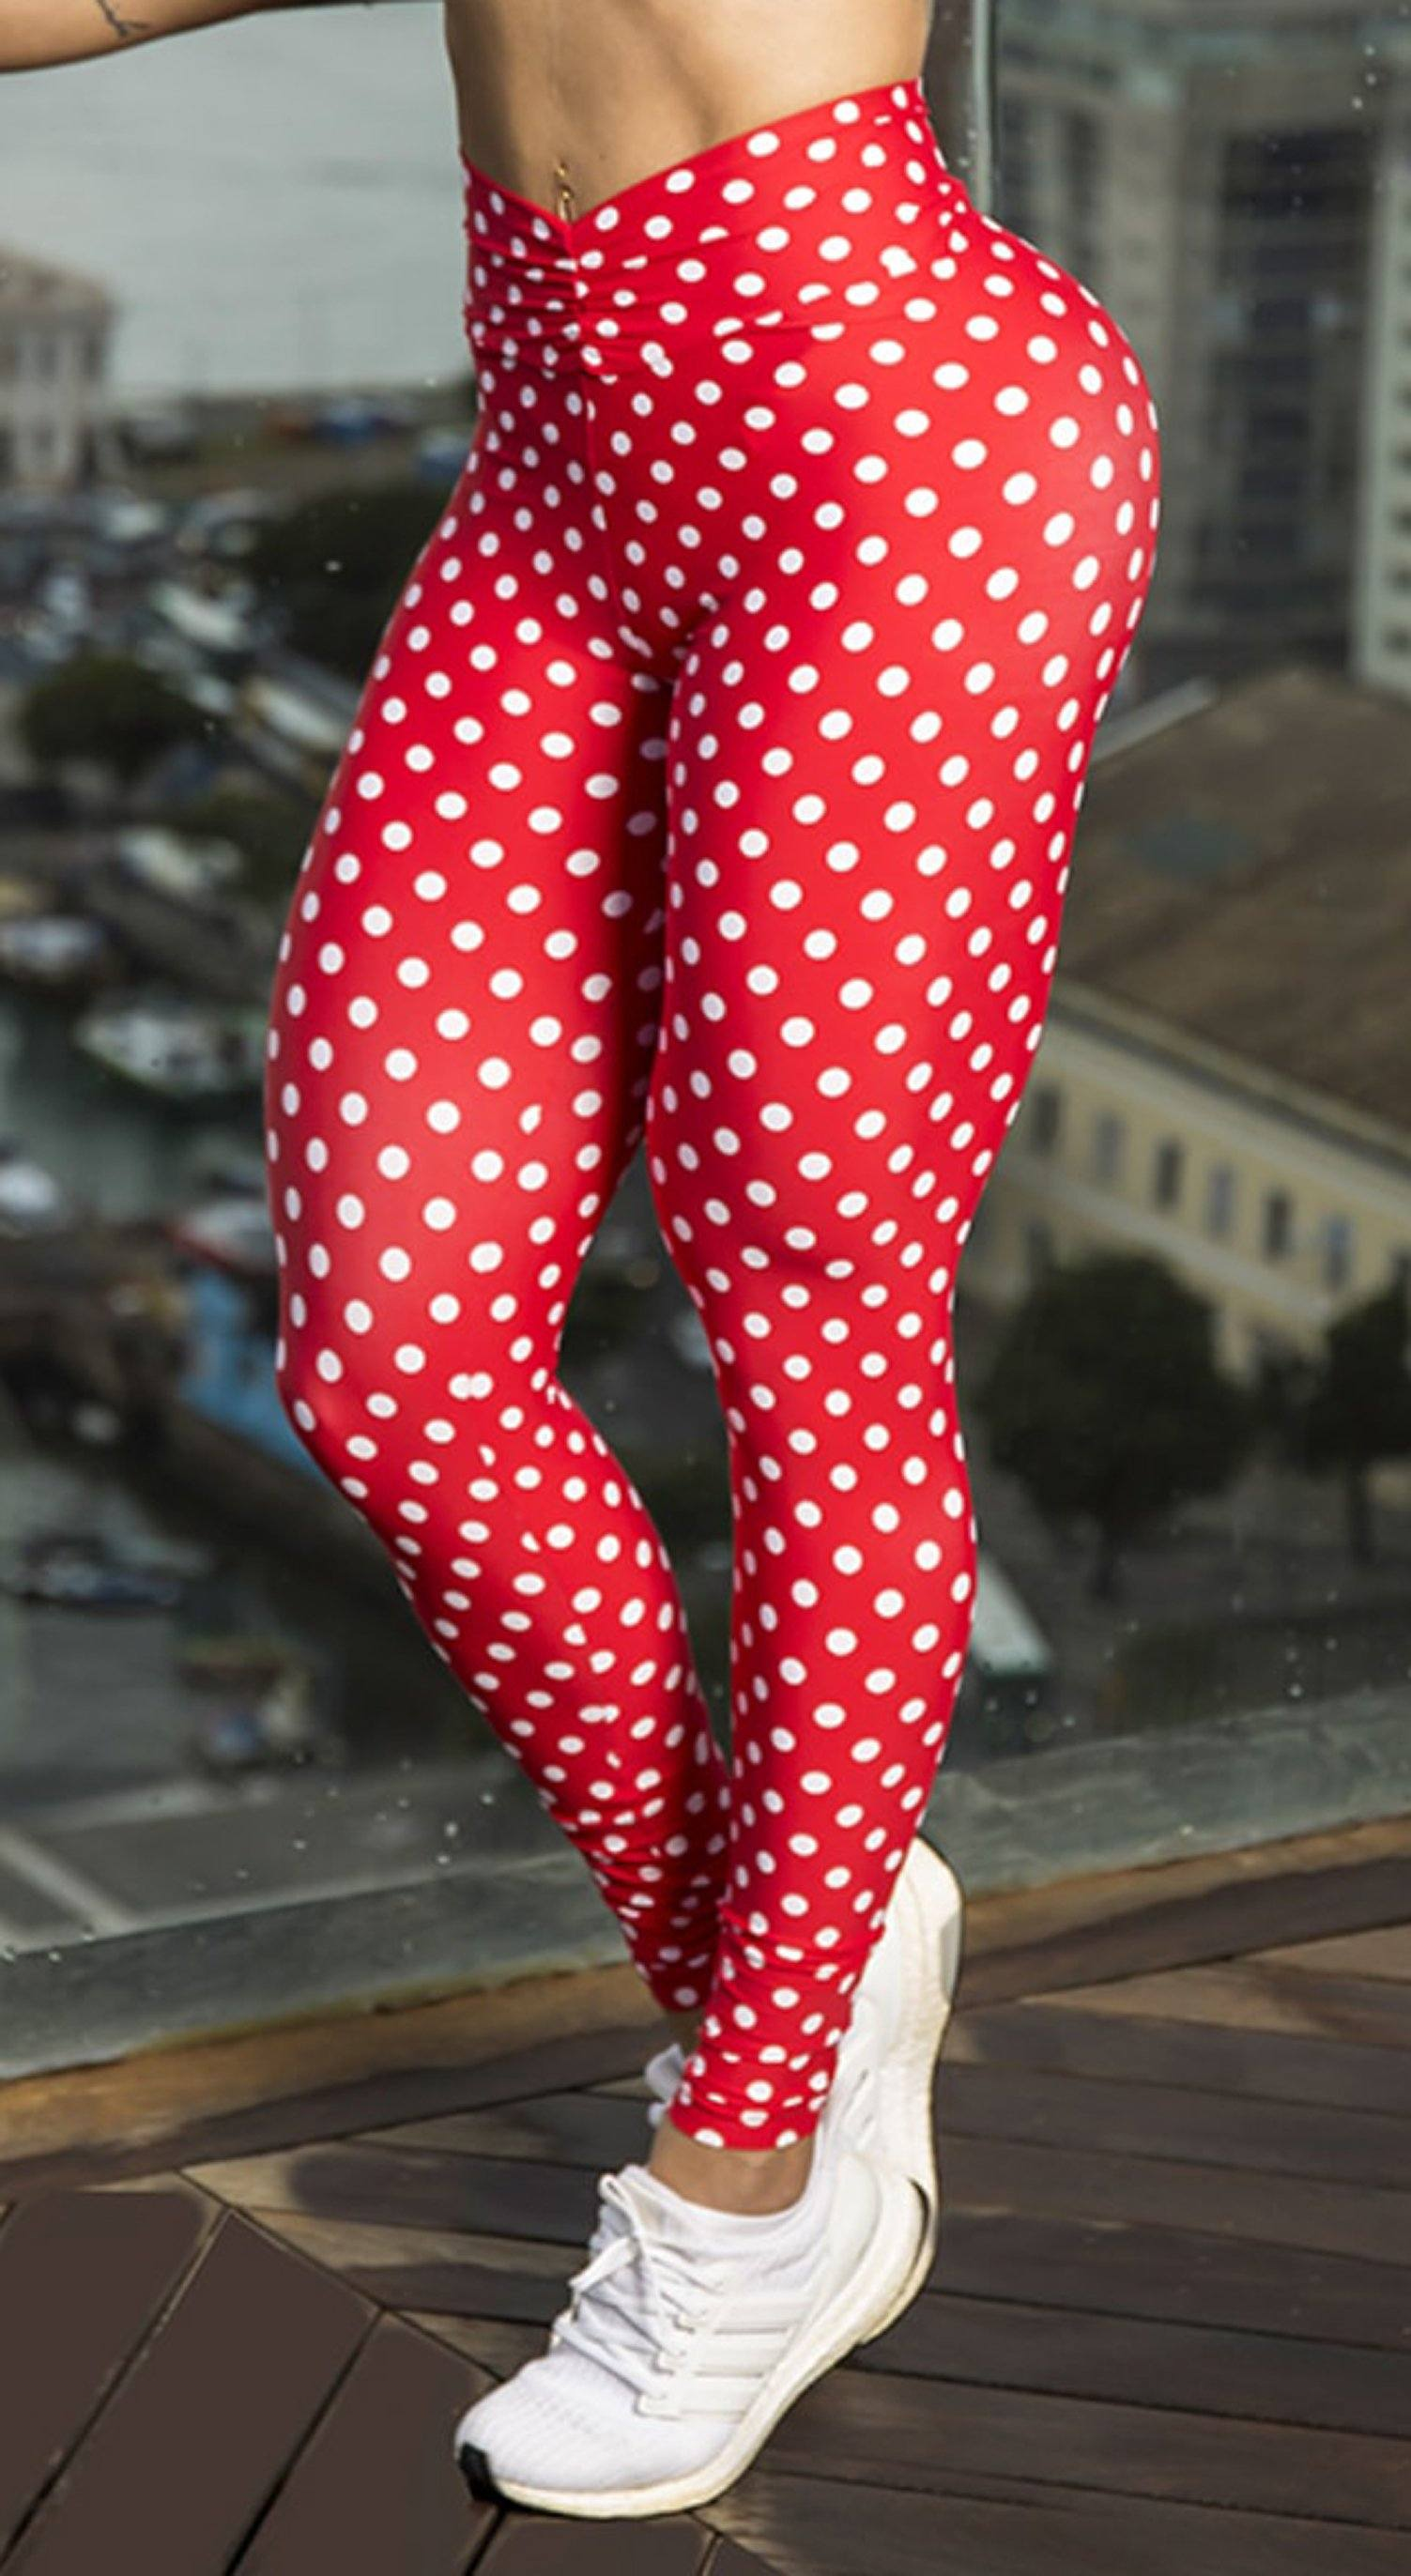 High Waist V Cut Scrunch Booty Leggings Polka Dots Red & White